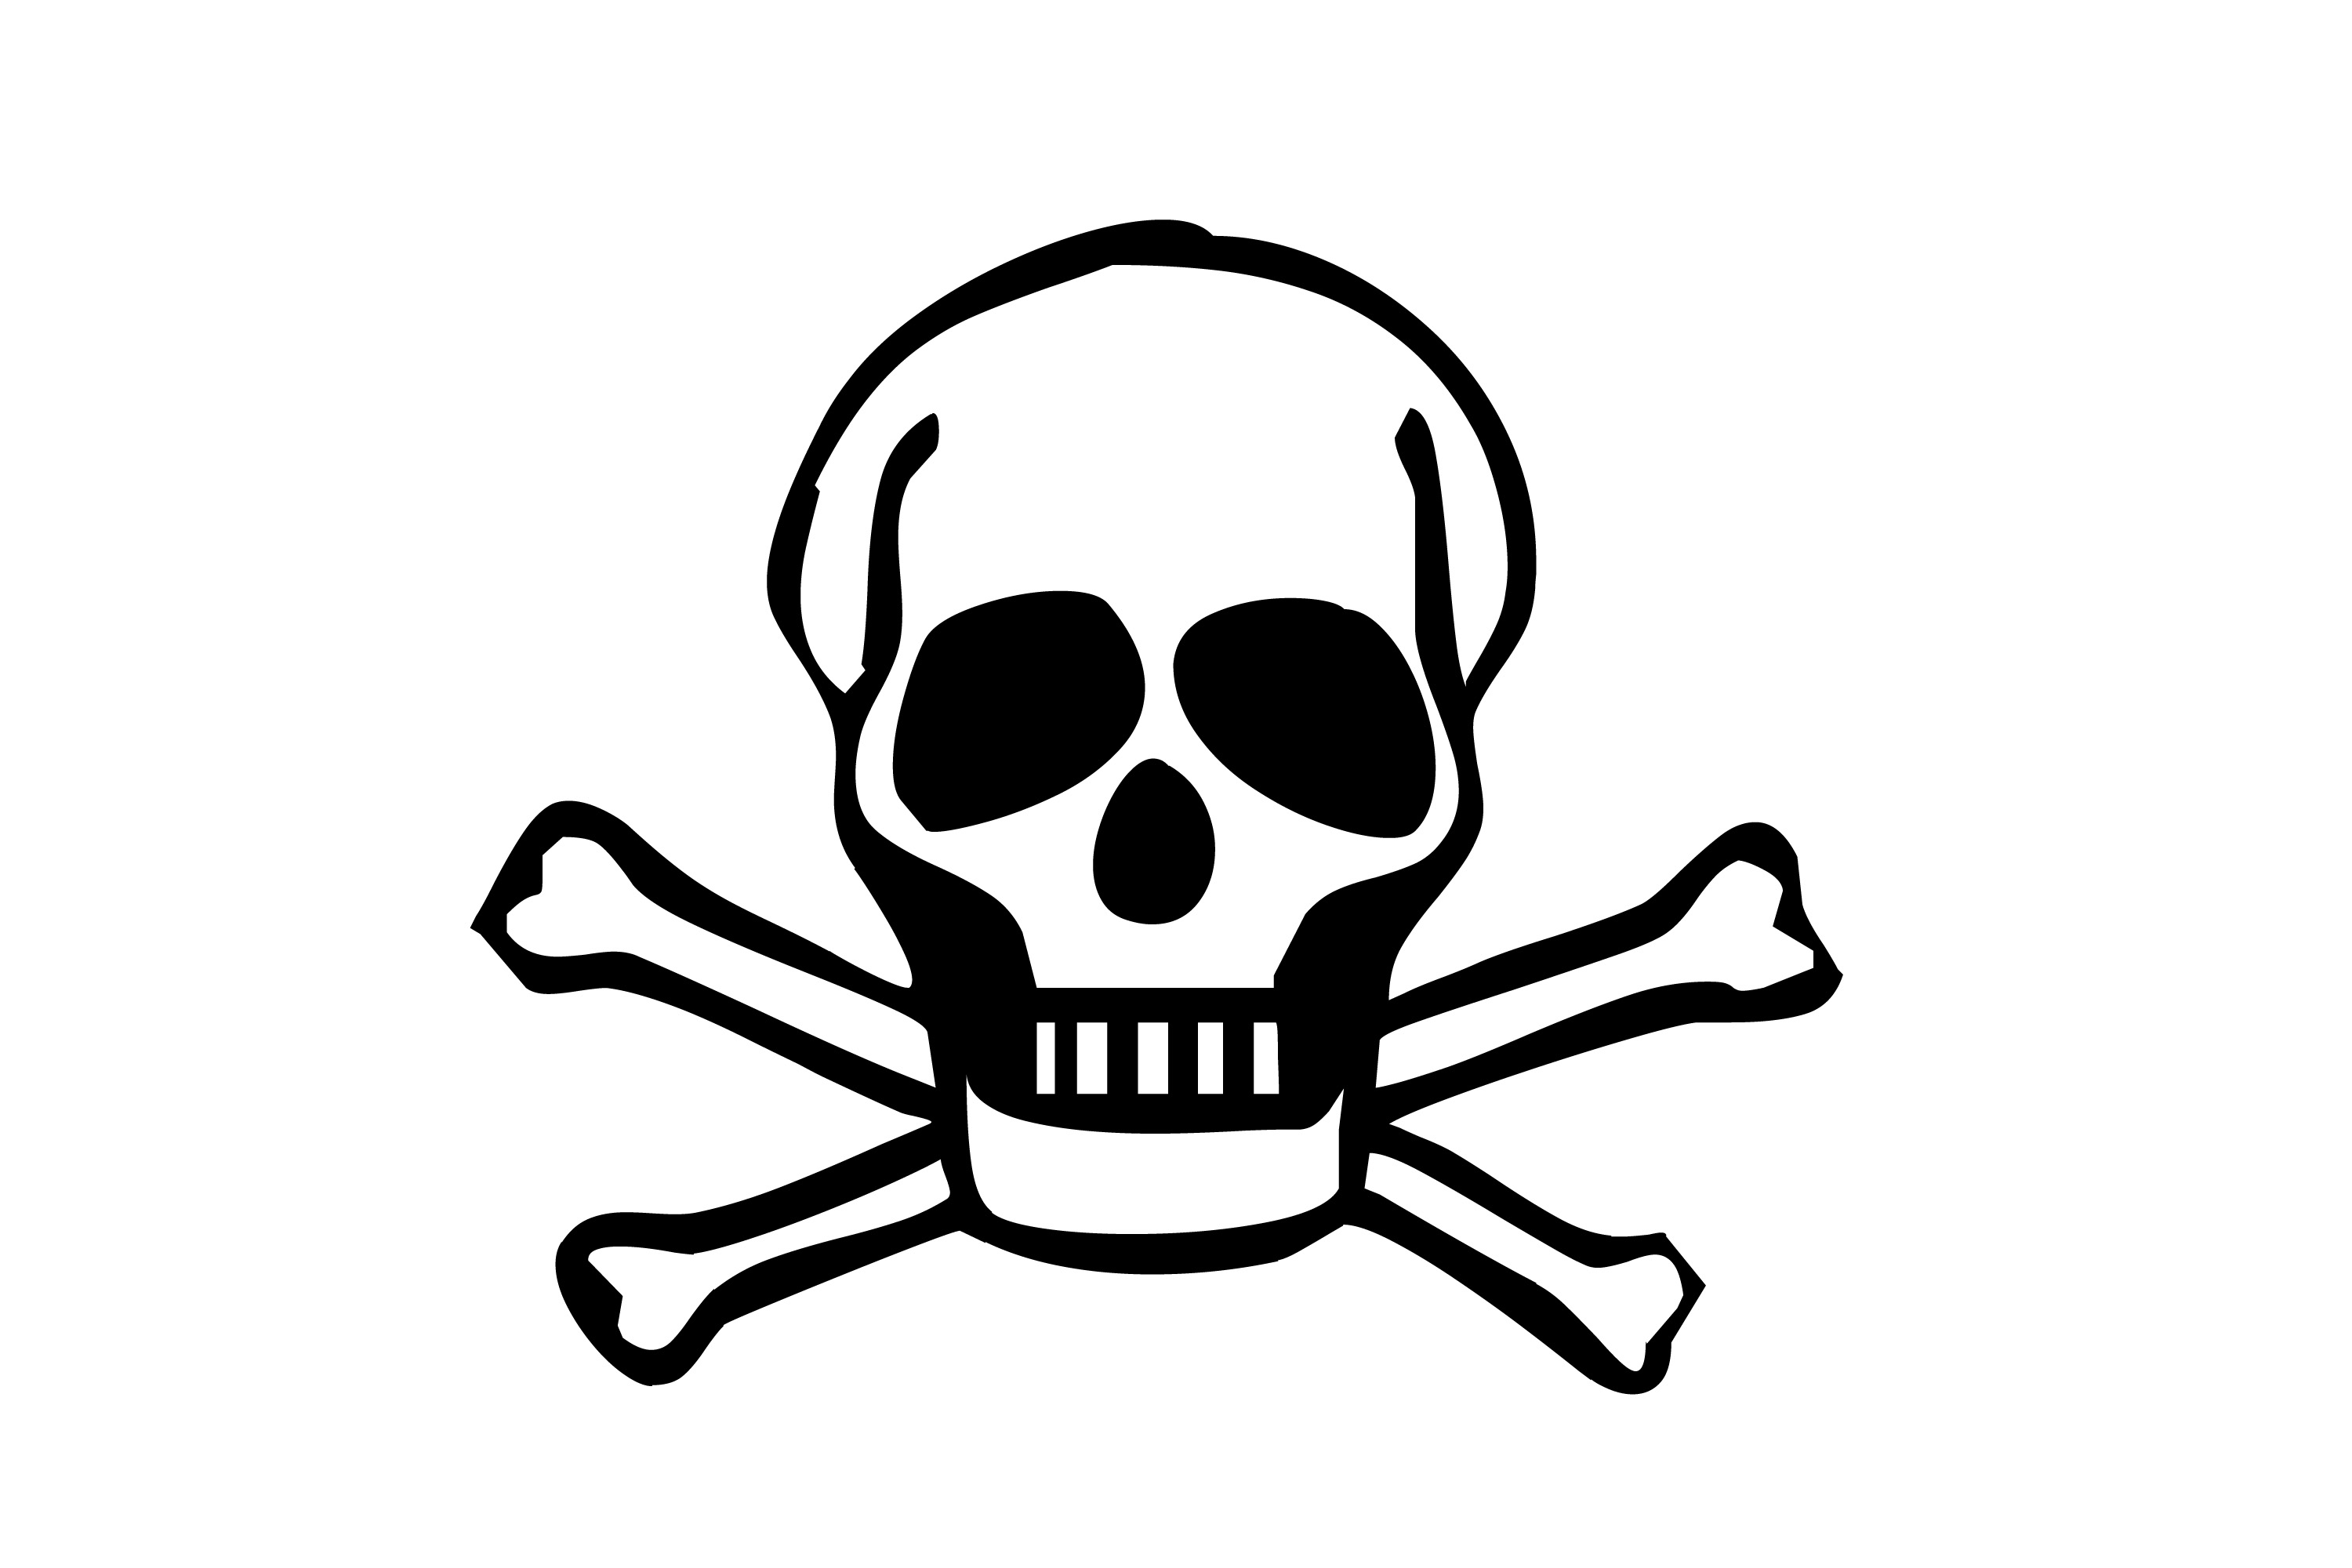 Skull with bones clipart png black and white library 15+ Skull And Bones Clip Art | ClipartLook png black and white library